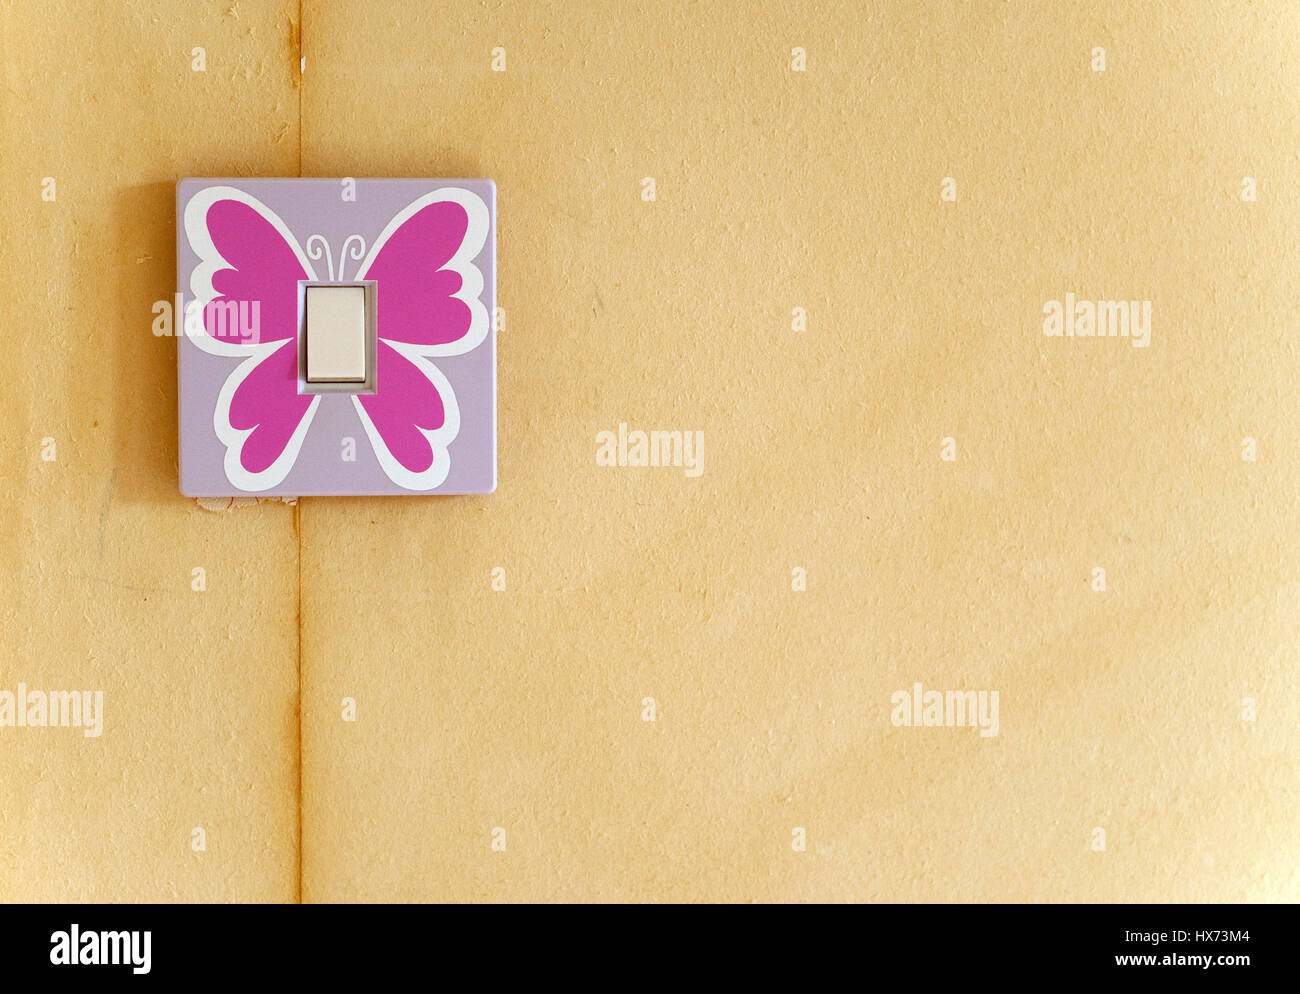 Decorating a childrens bedroom - Stock Image